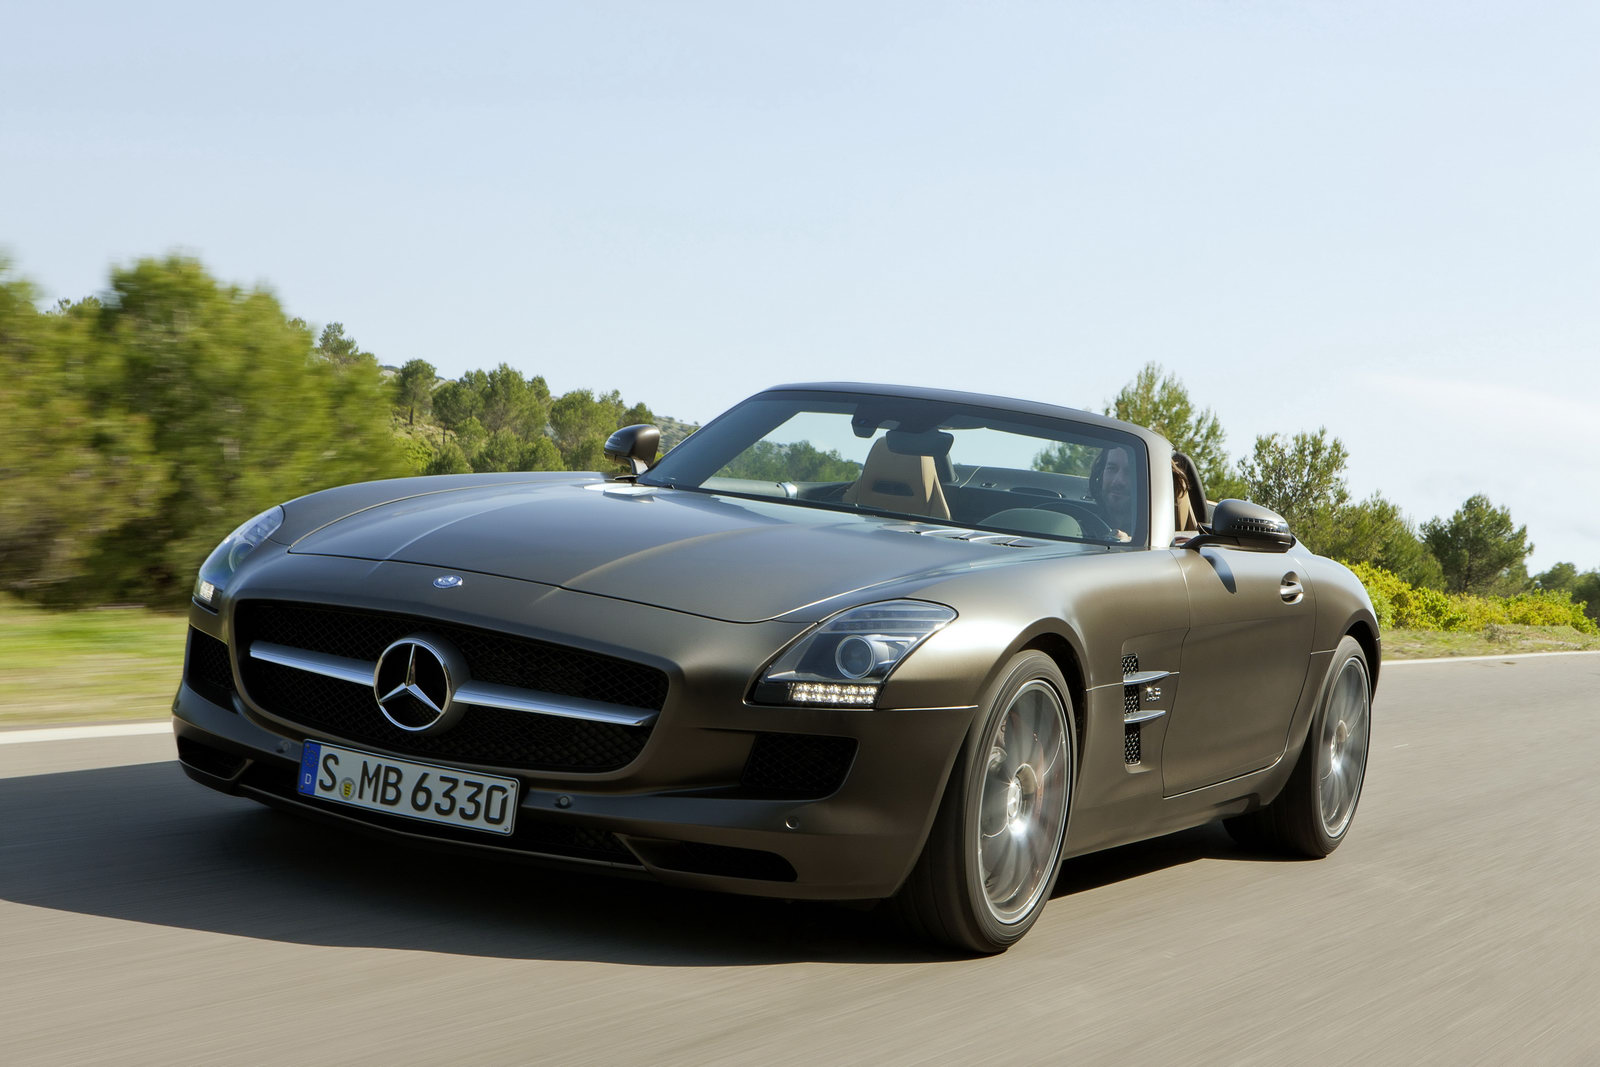 04305402-photo-nouveaute-mercedes-sls-amg-roadster